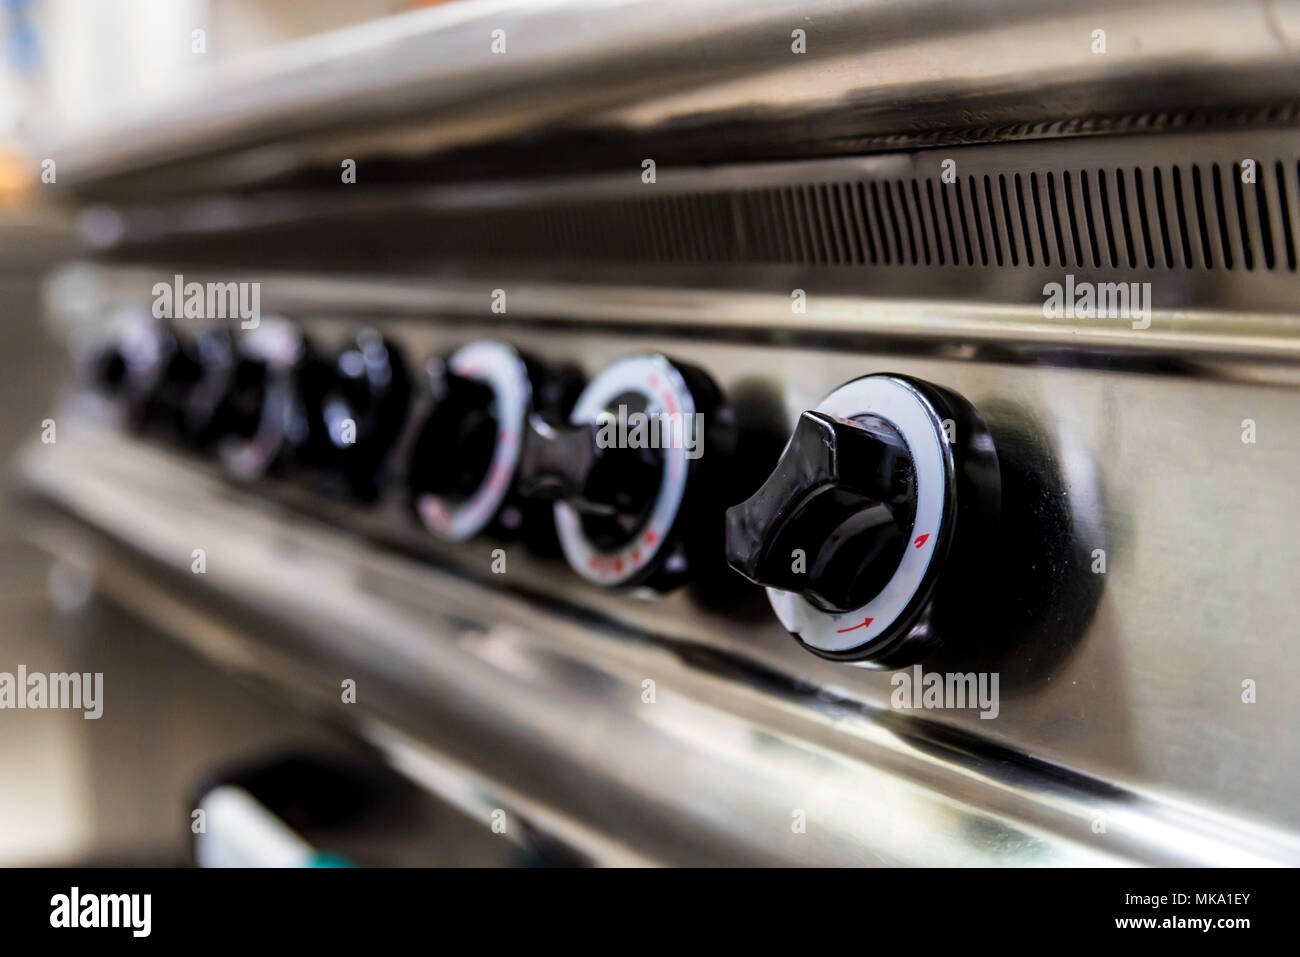 Control panel of gas stove - Stock Image